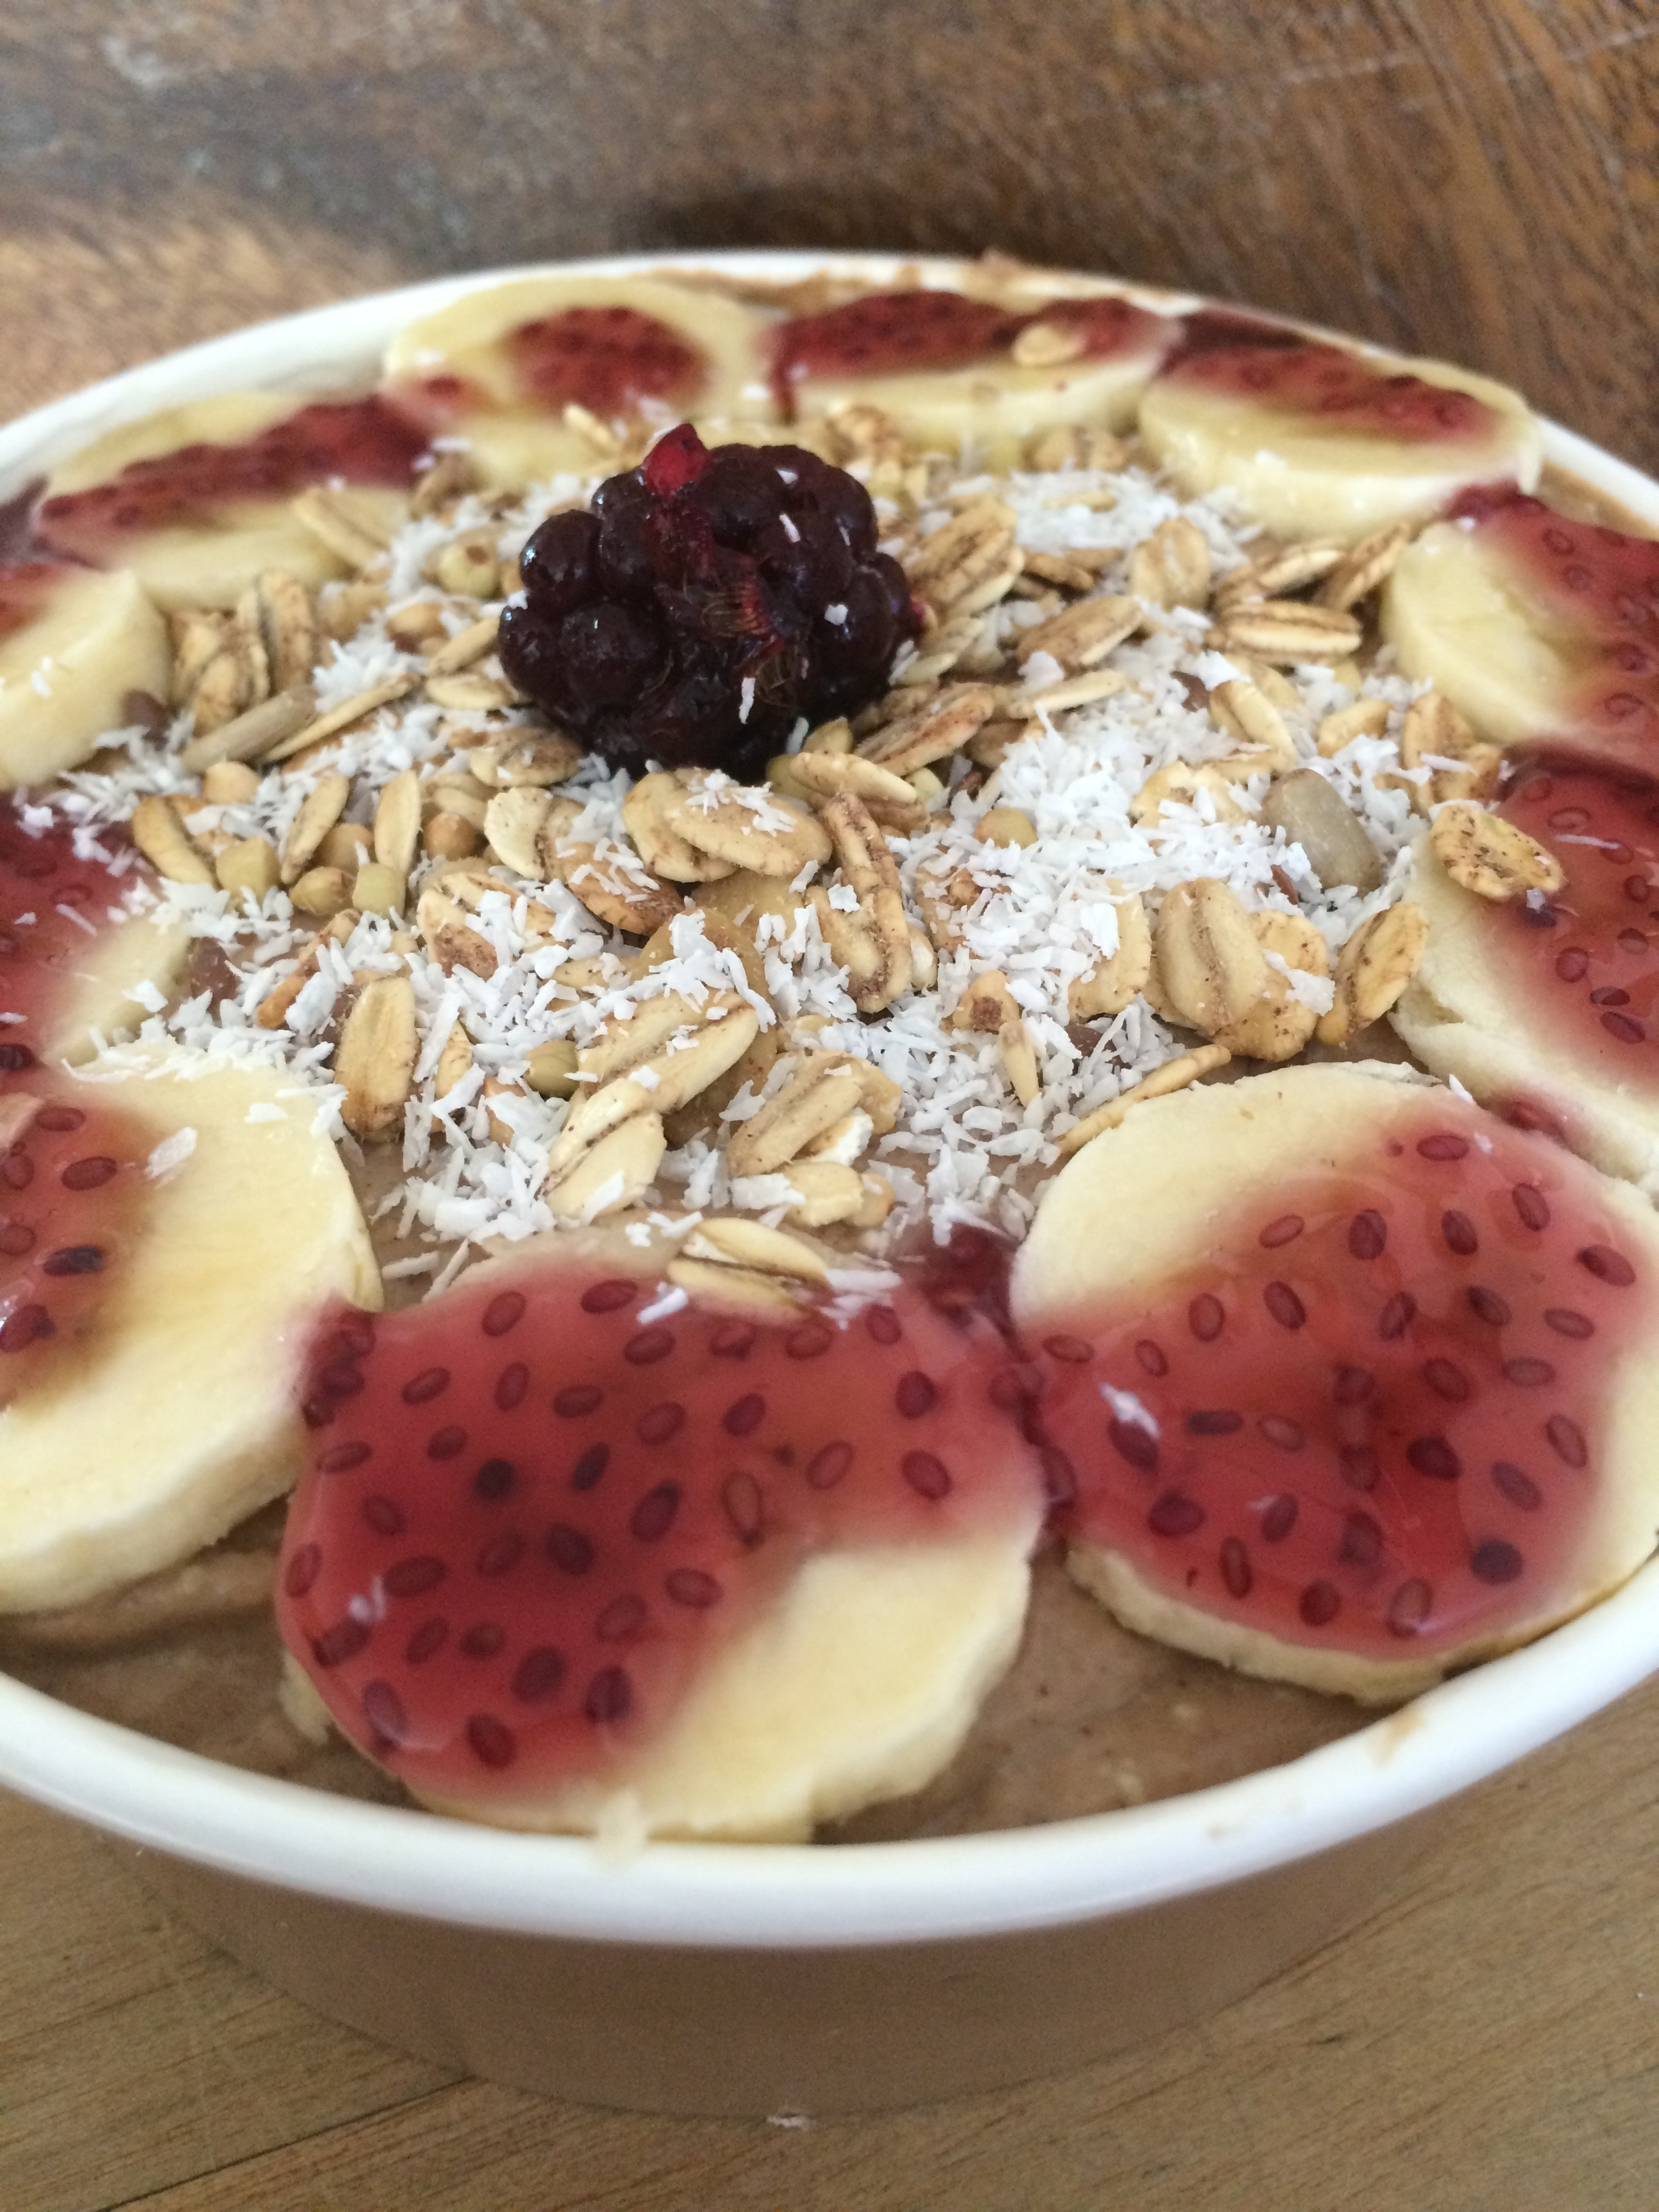 Our cacao bowl topped with a blueberry and apple chia jelly sauce